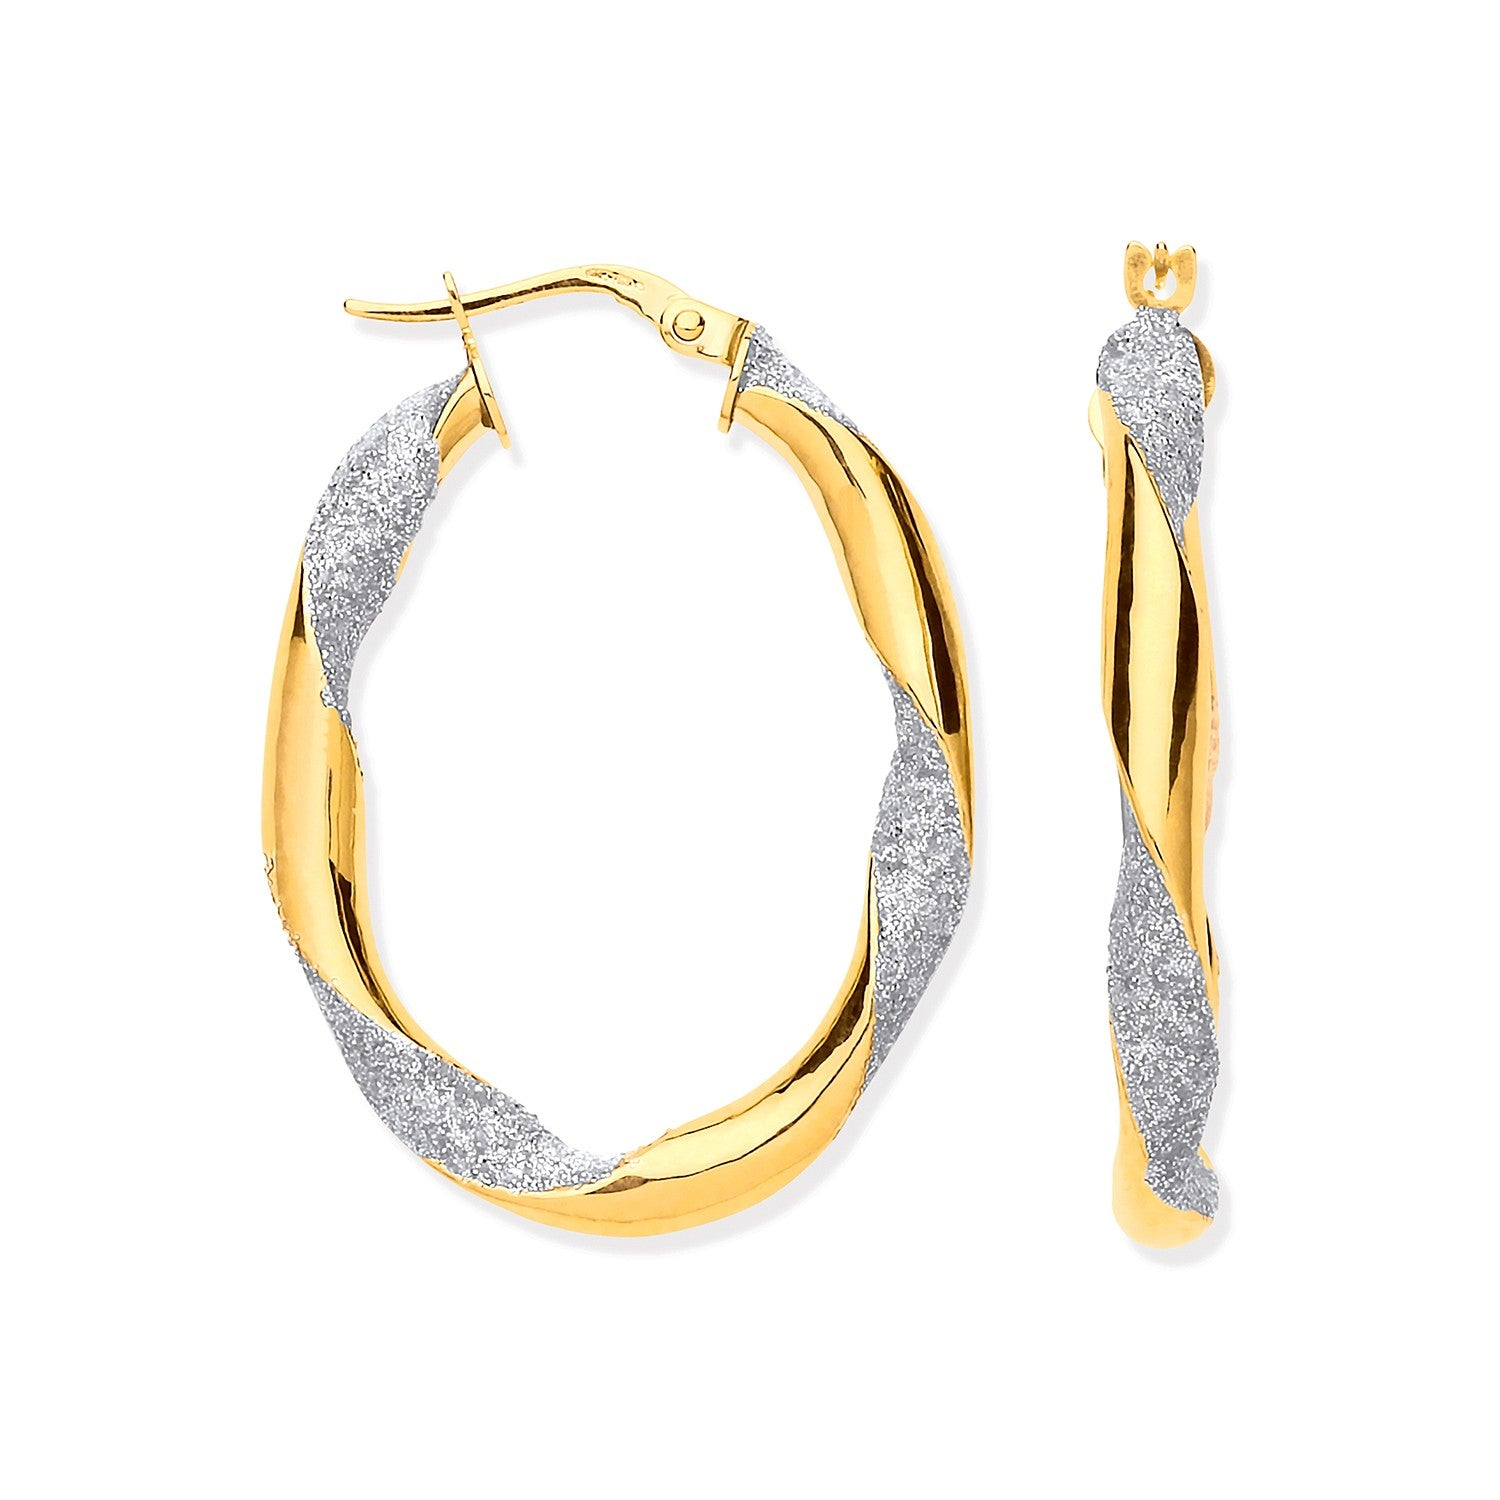 Y/G Glitter Finish Twisted Oval Hoop Earrings